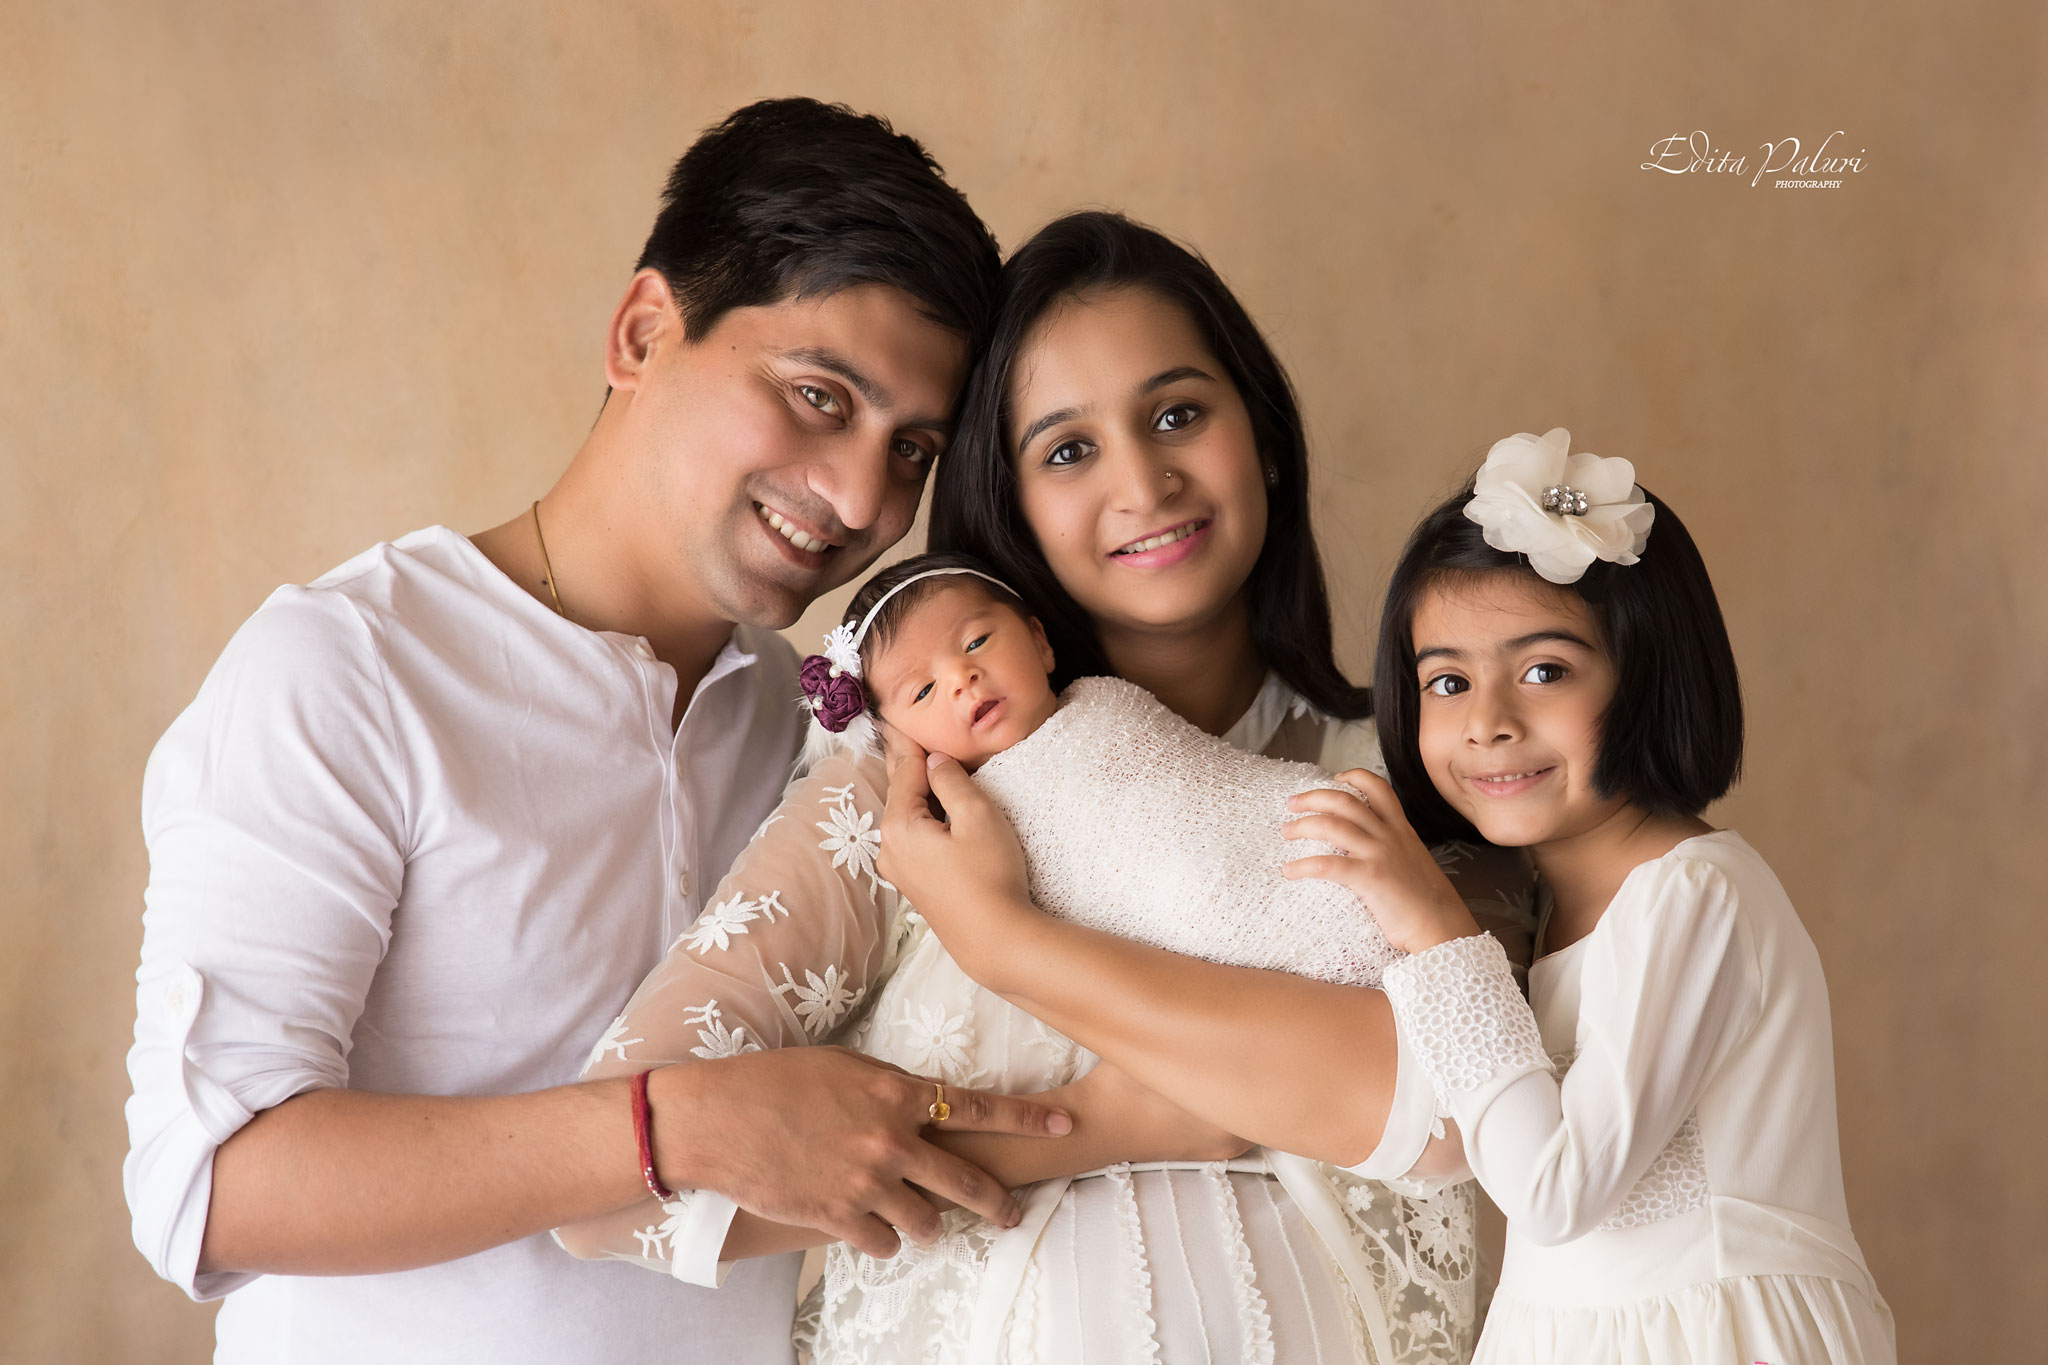 Family picture of 4, newborn girl